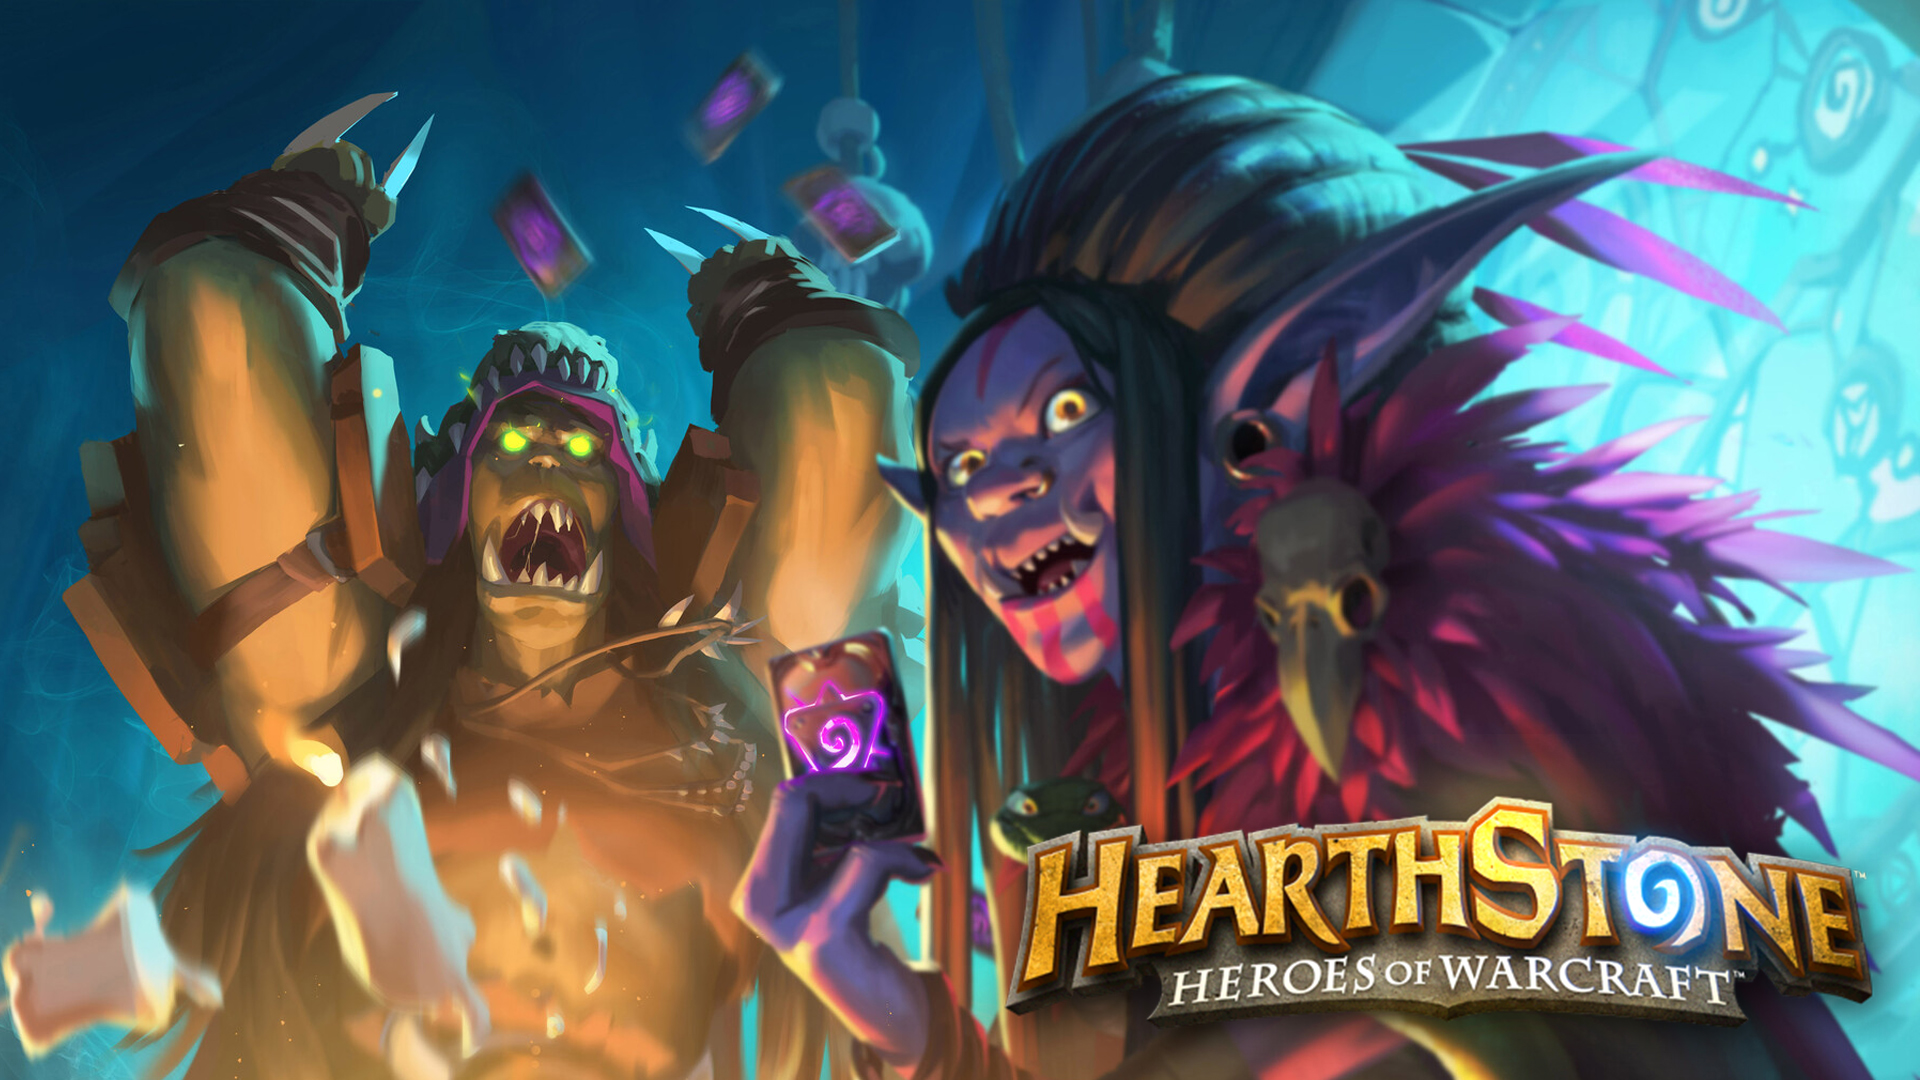 22.30 - Start HearthStone